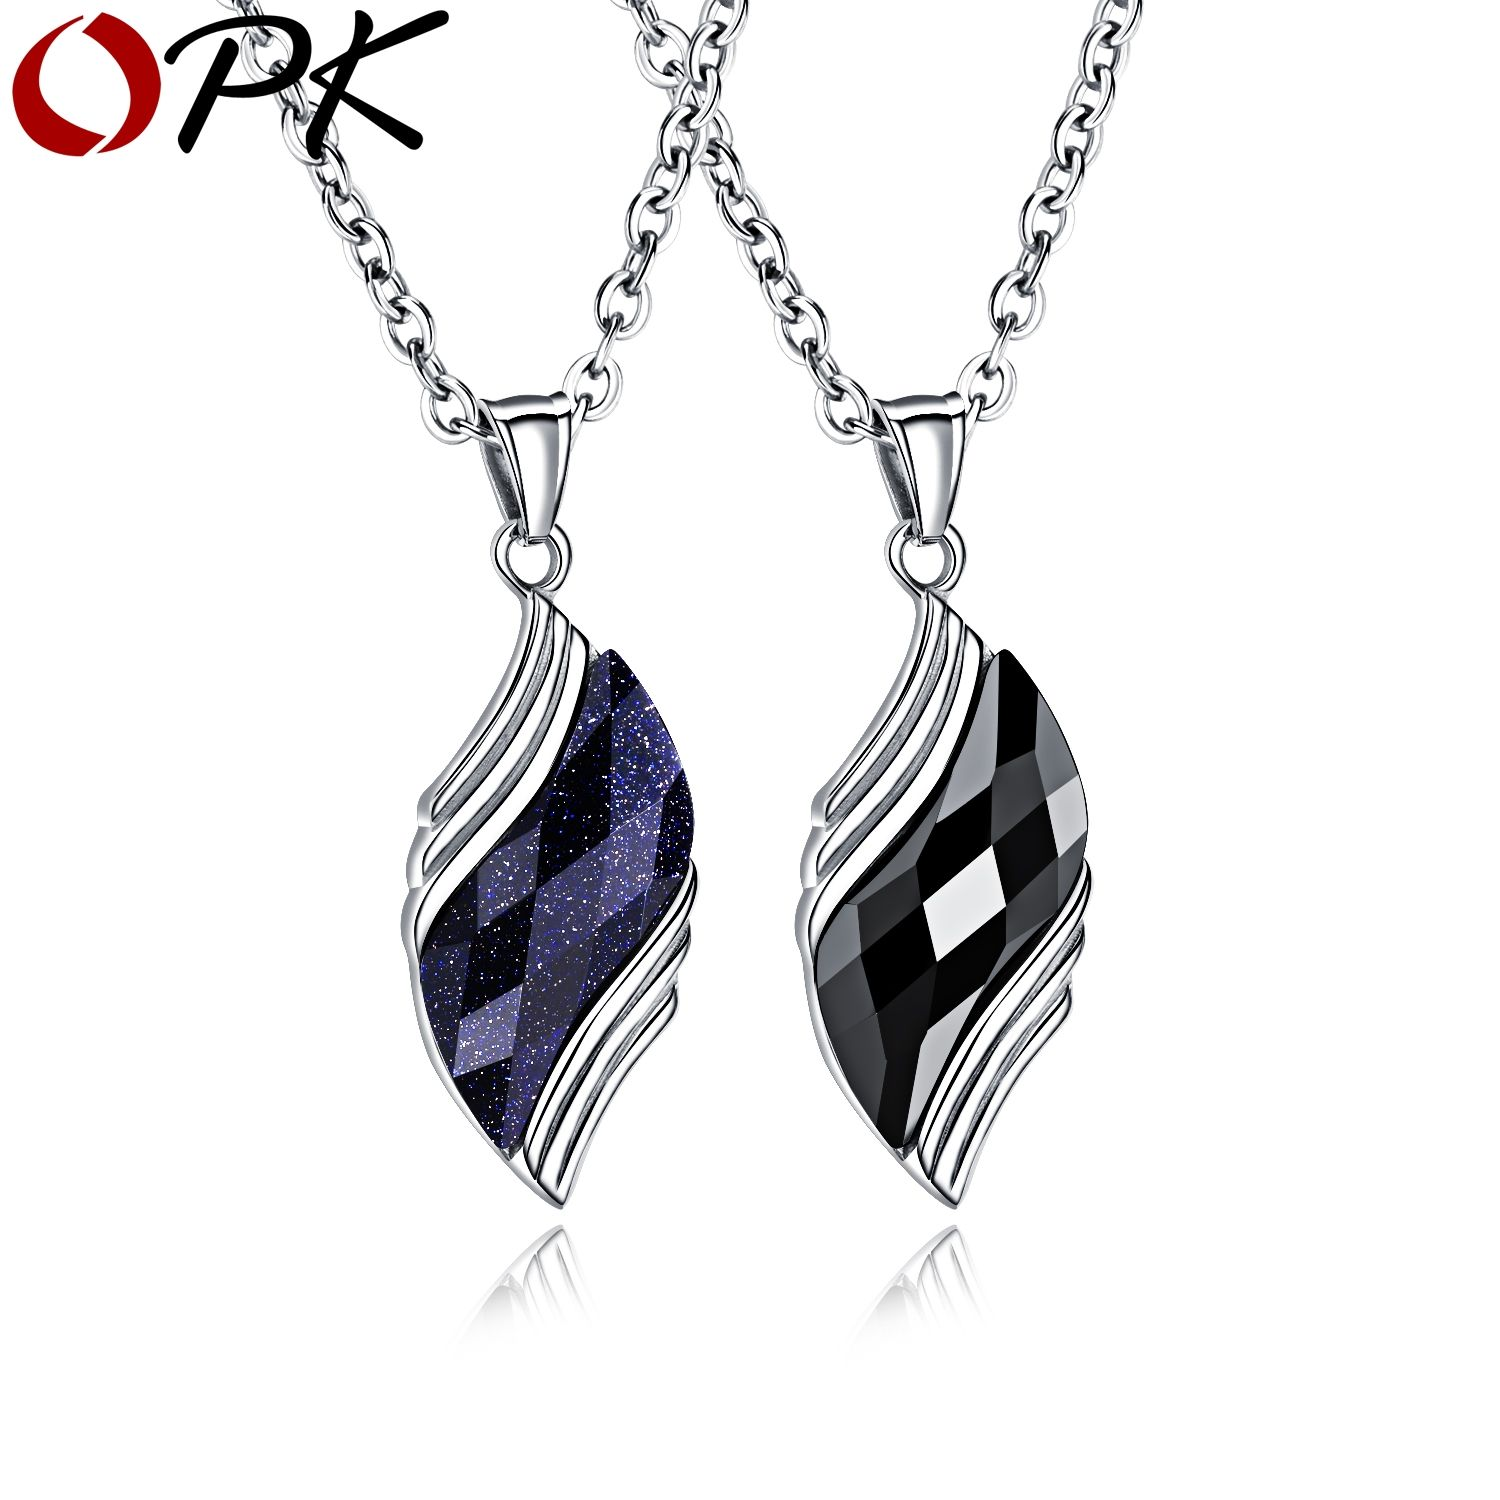 OPK OPK AAA+ Cubic Zirconia Men Necklace For Male Blue Rhinestone Stainless Steel Men Jewelry Necklaces <font><b>Charm</b></font> Link Chain GX001